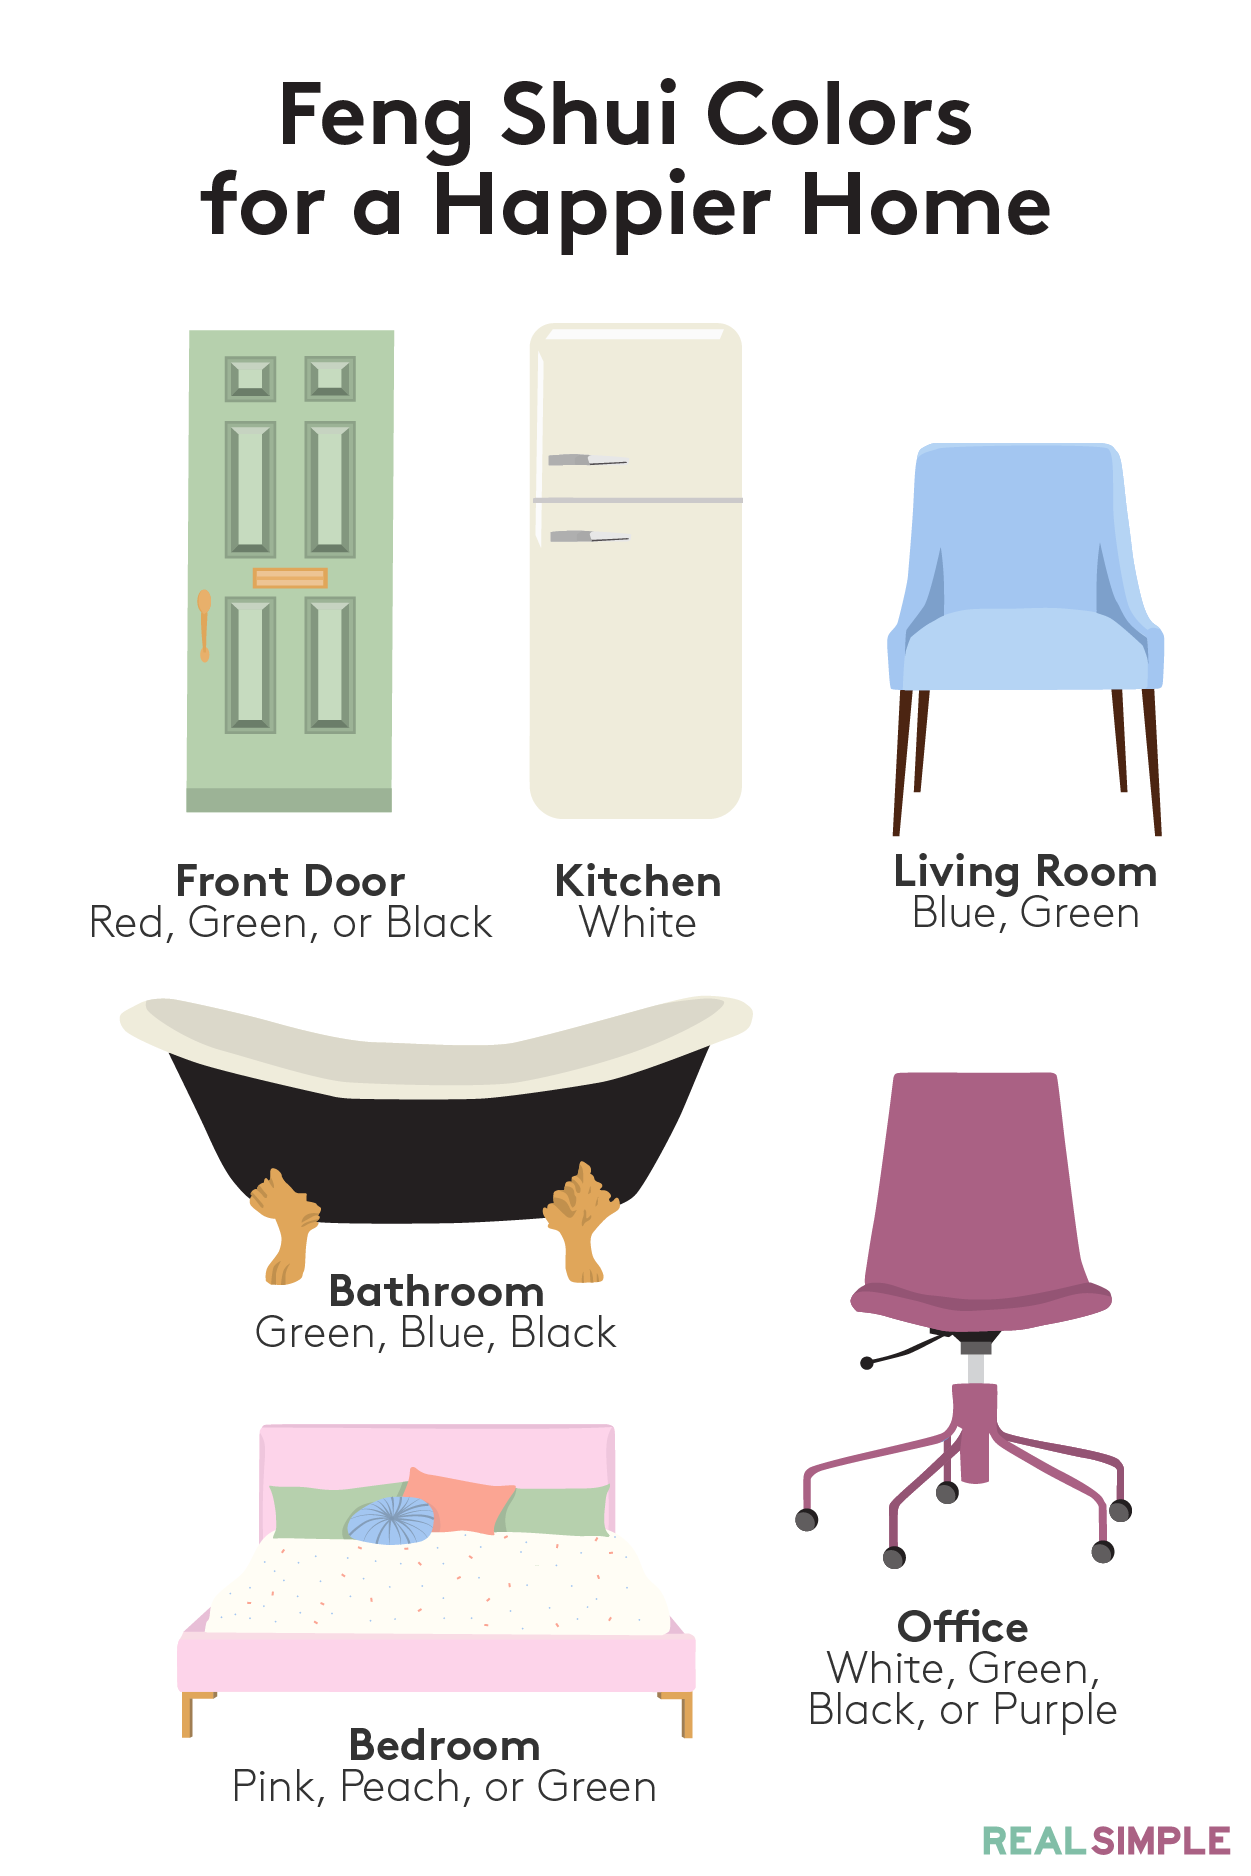 Feng Shui Colors for Happier Home